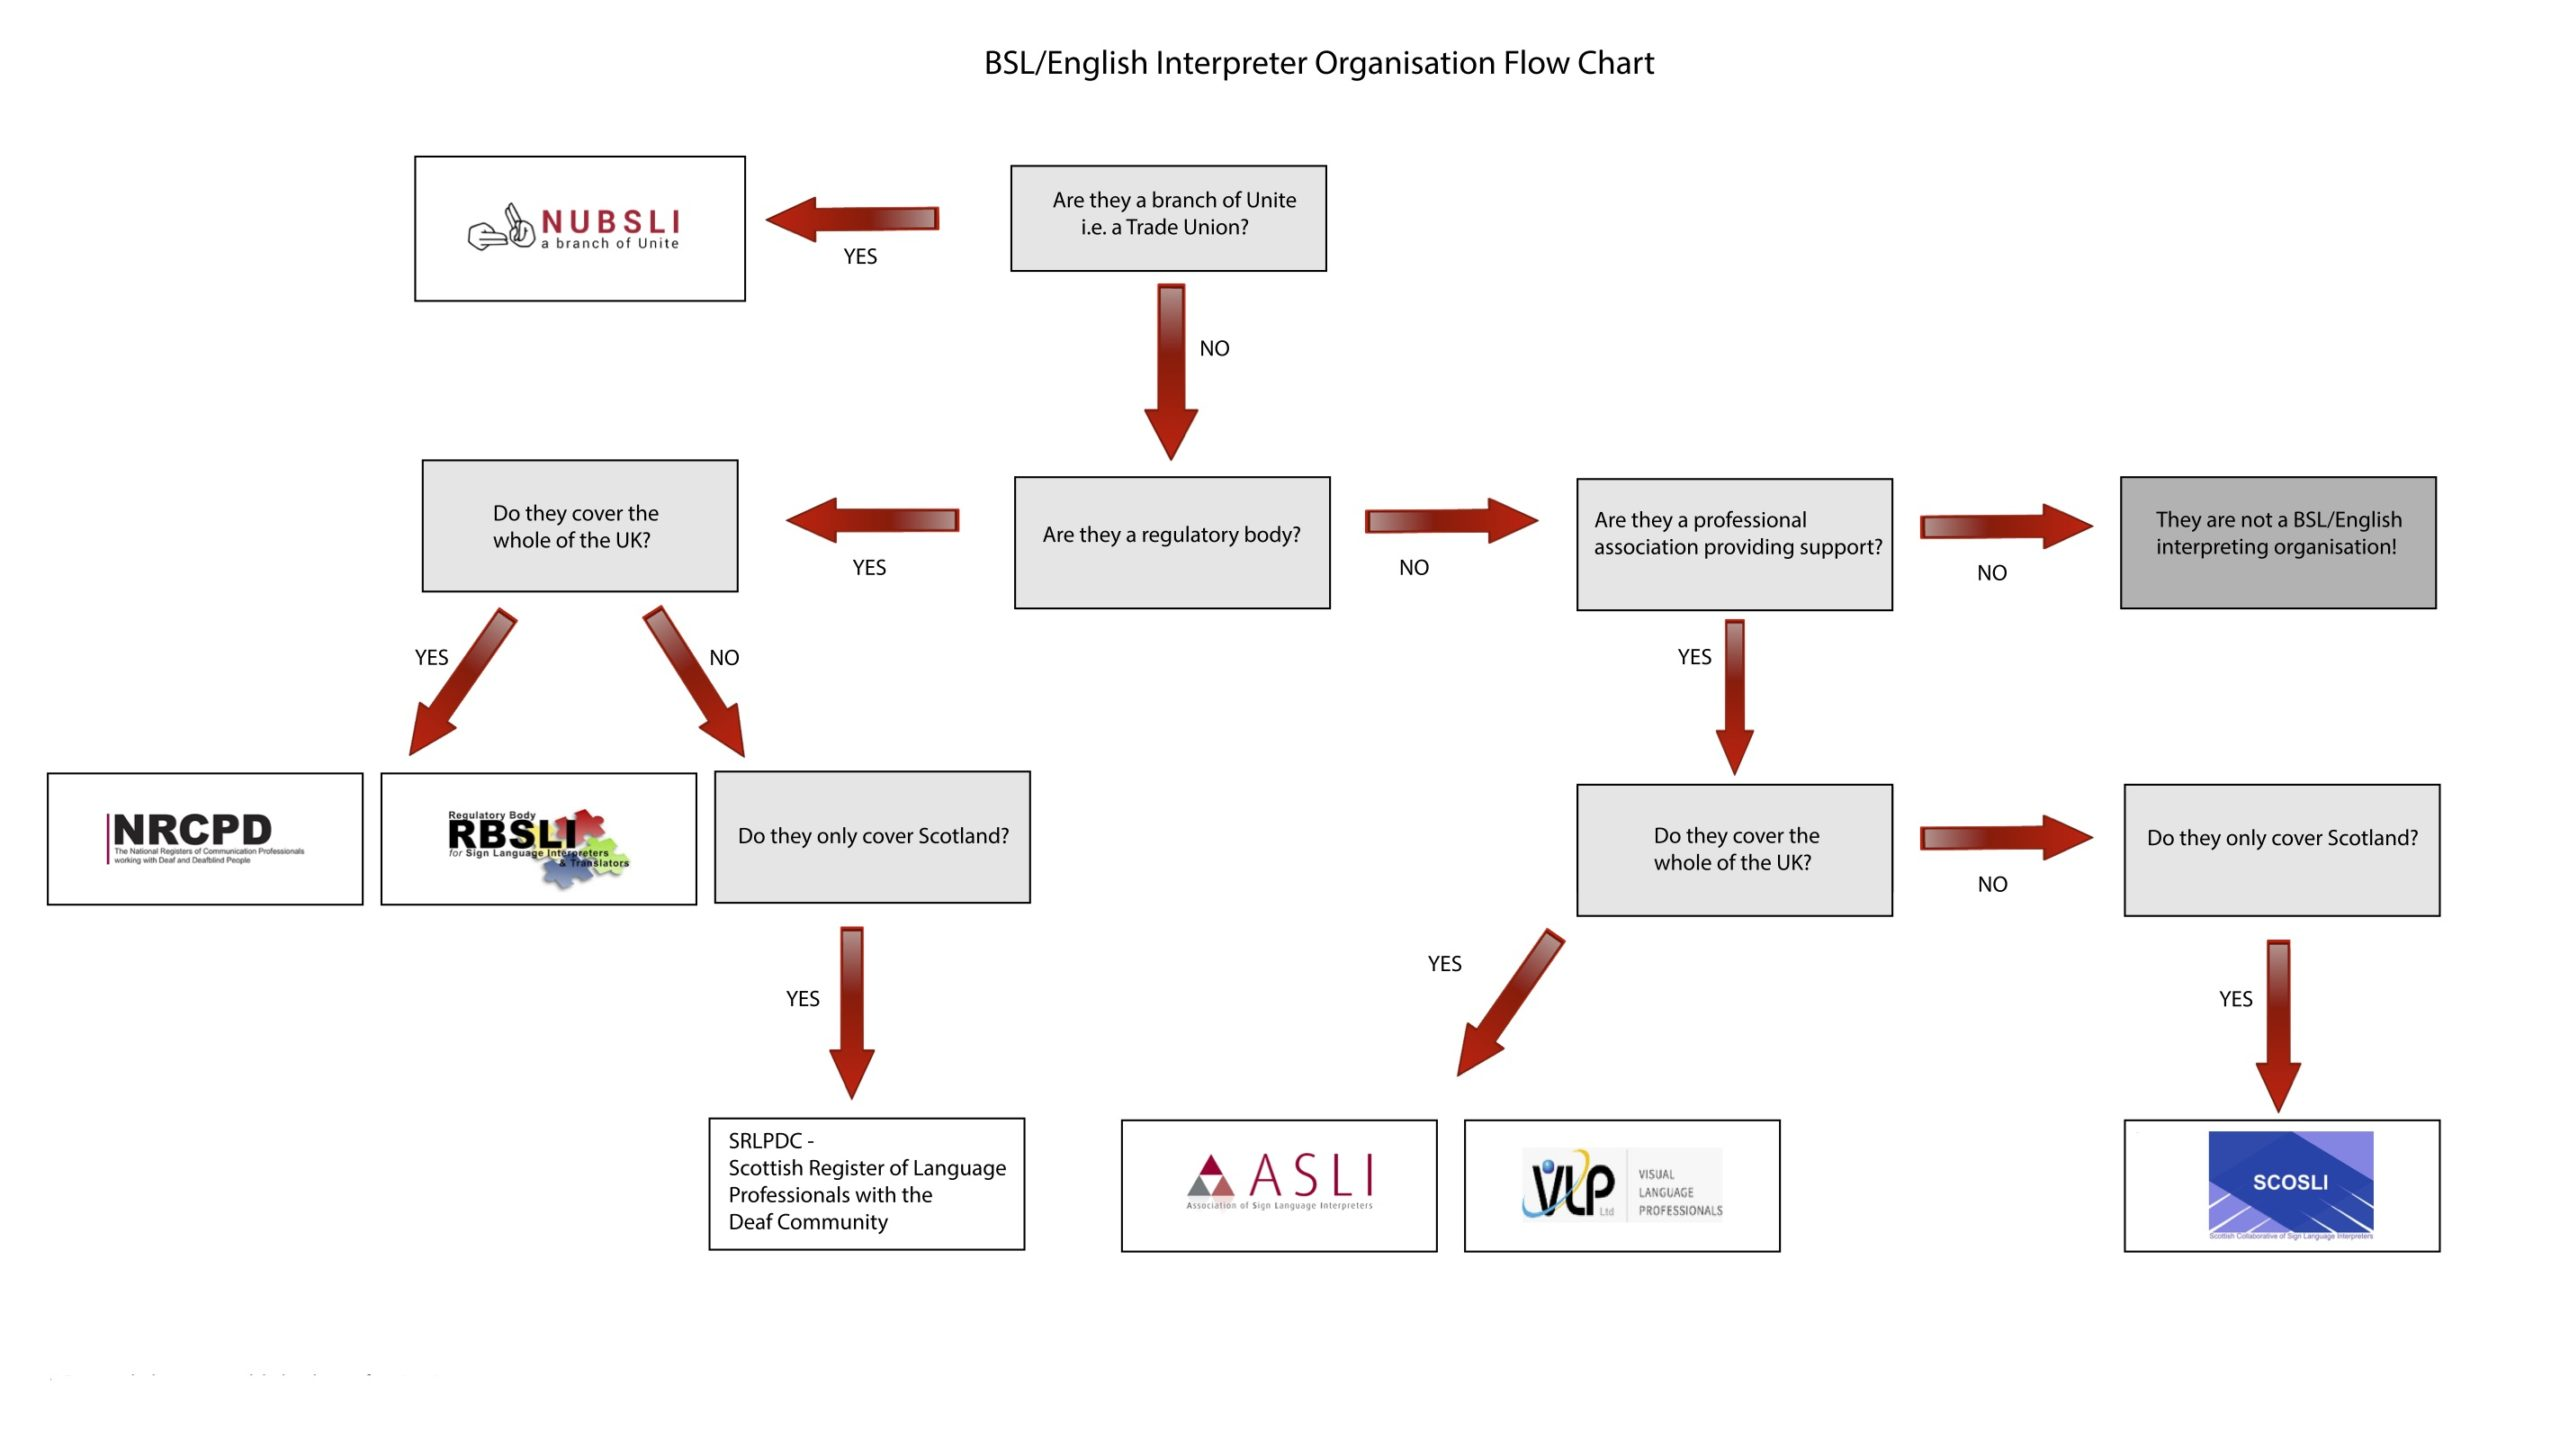 Flow chart showing interpreter and translator organisations in the UK